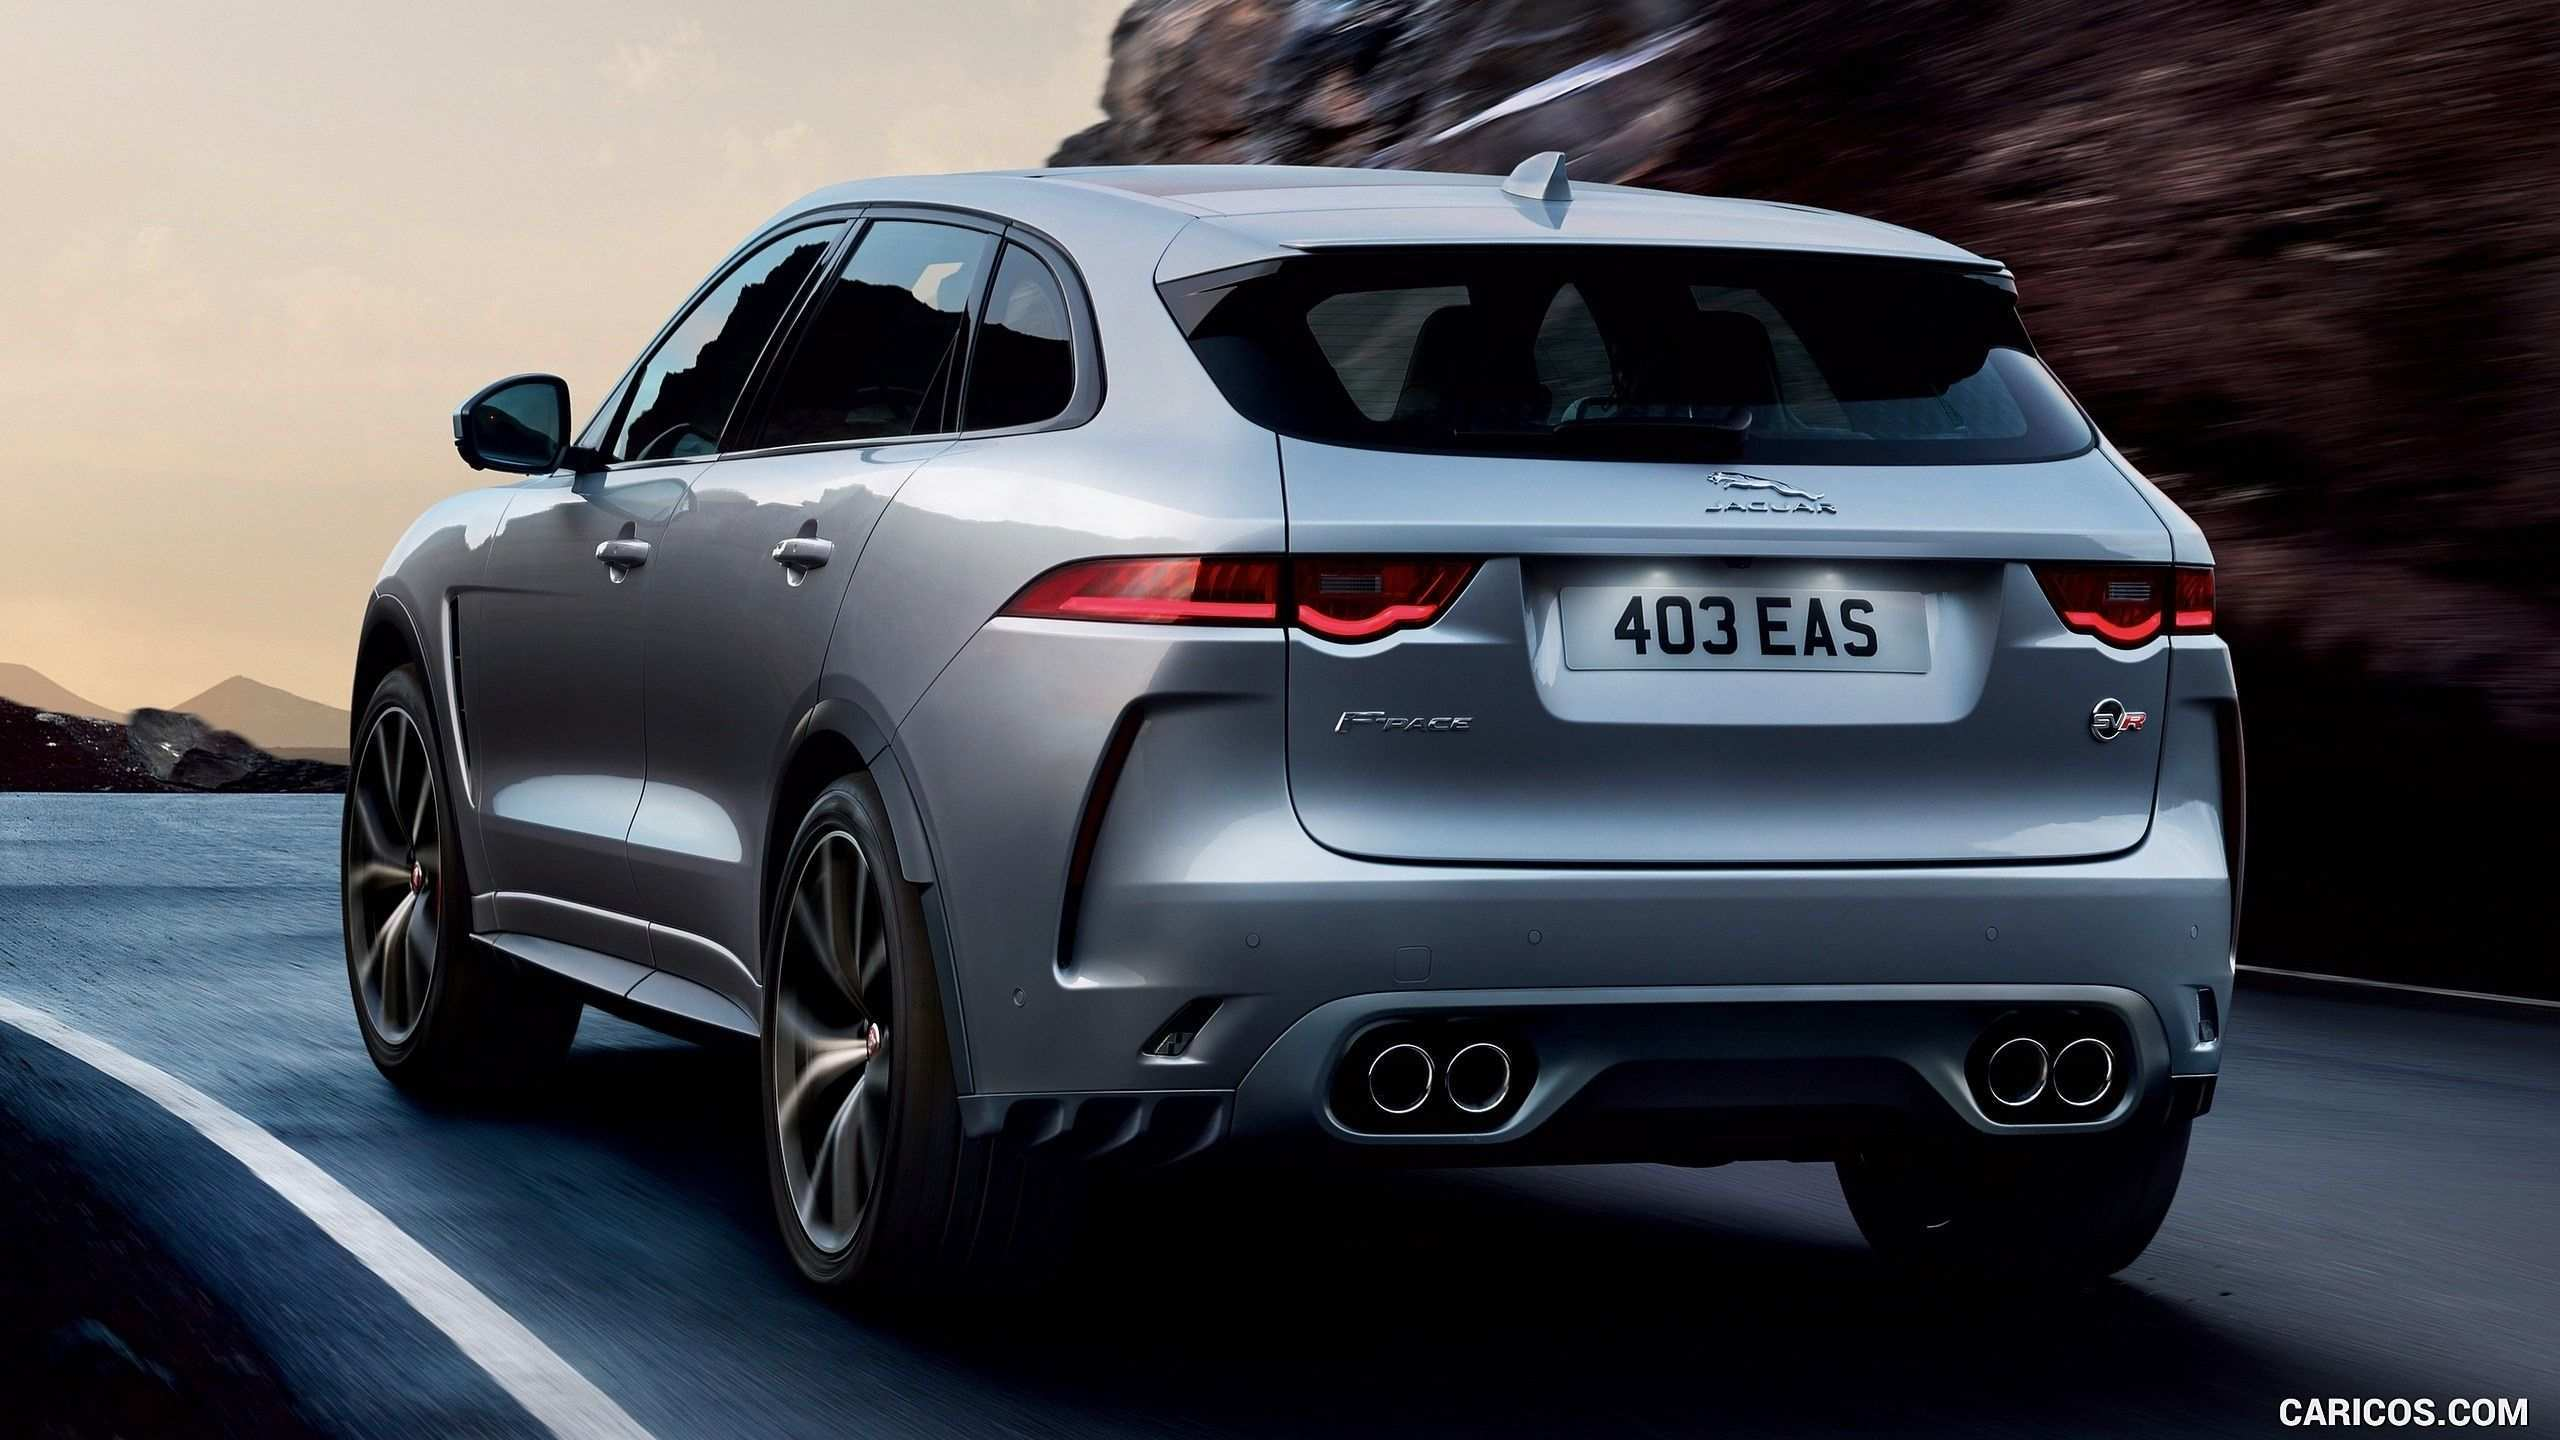 88 Best Review Jaguar F Pace 2019 Interior Performance and New Engine with Jaguar F Pace 2019 Interior